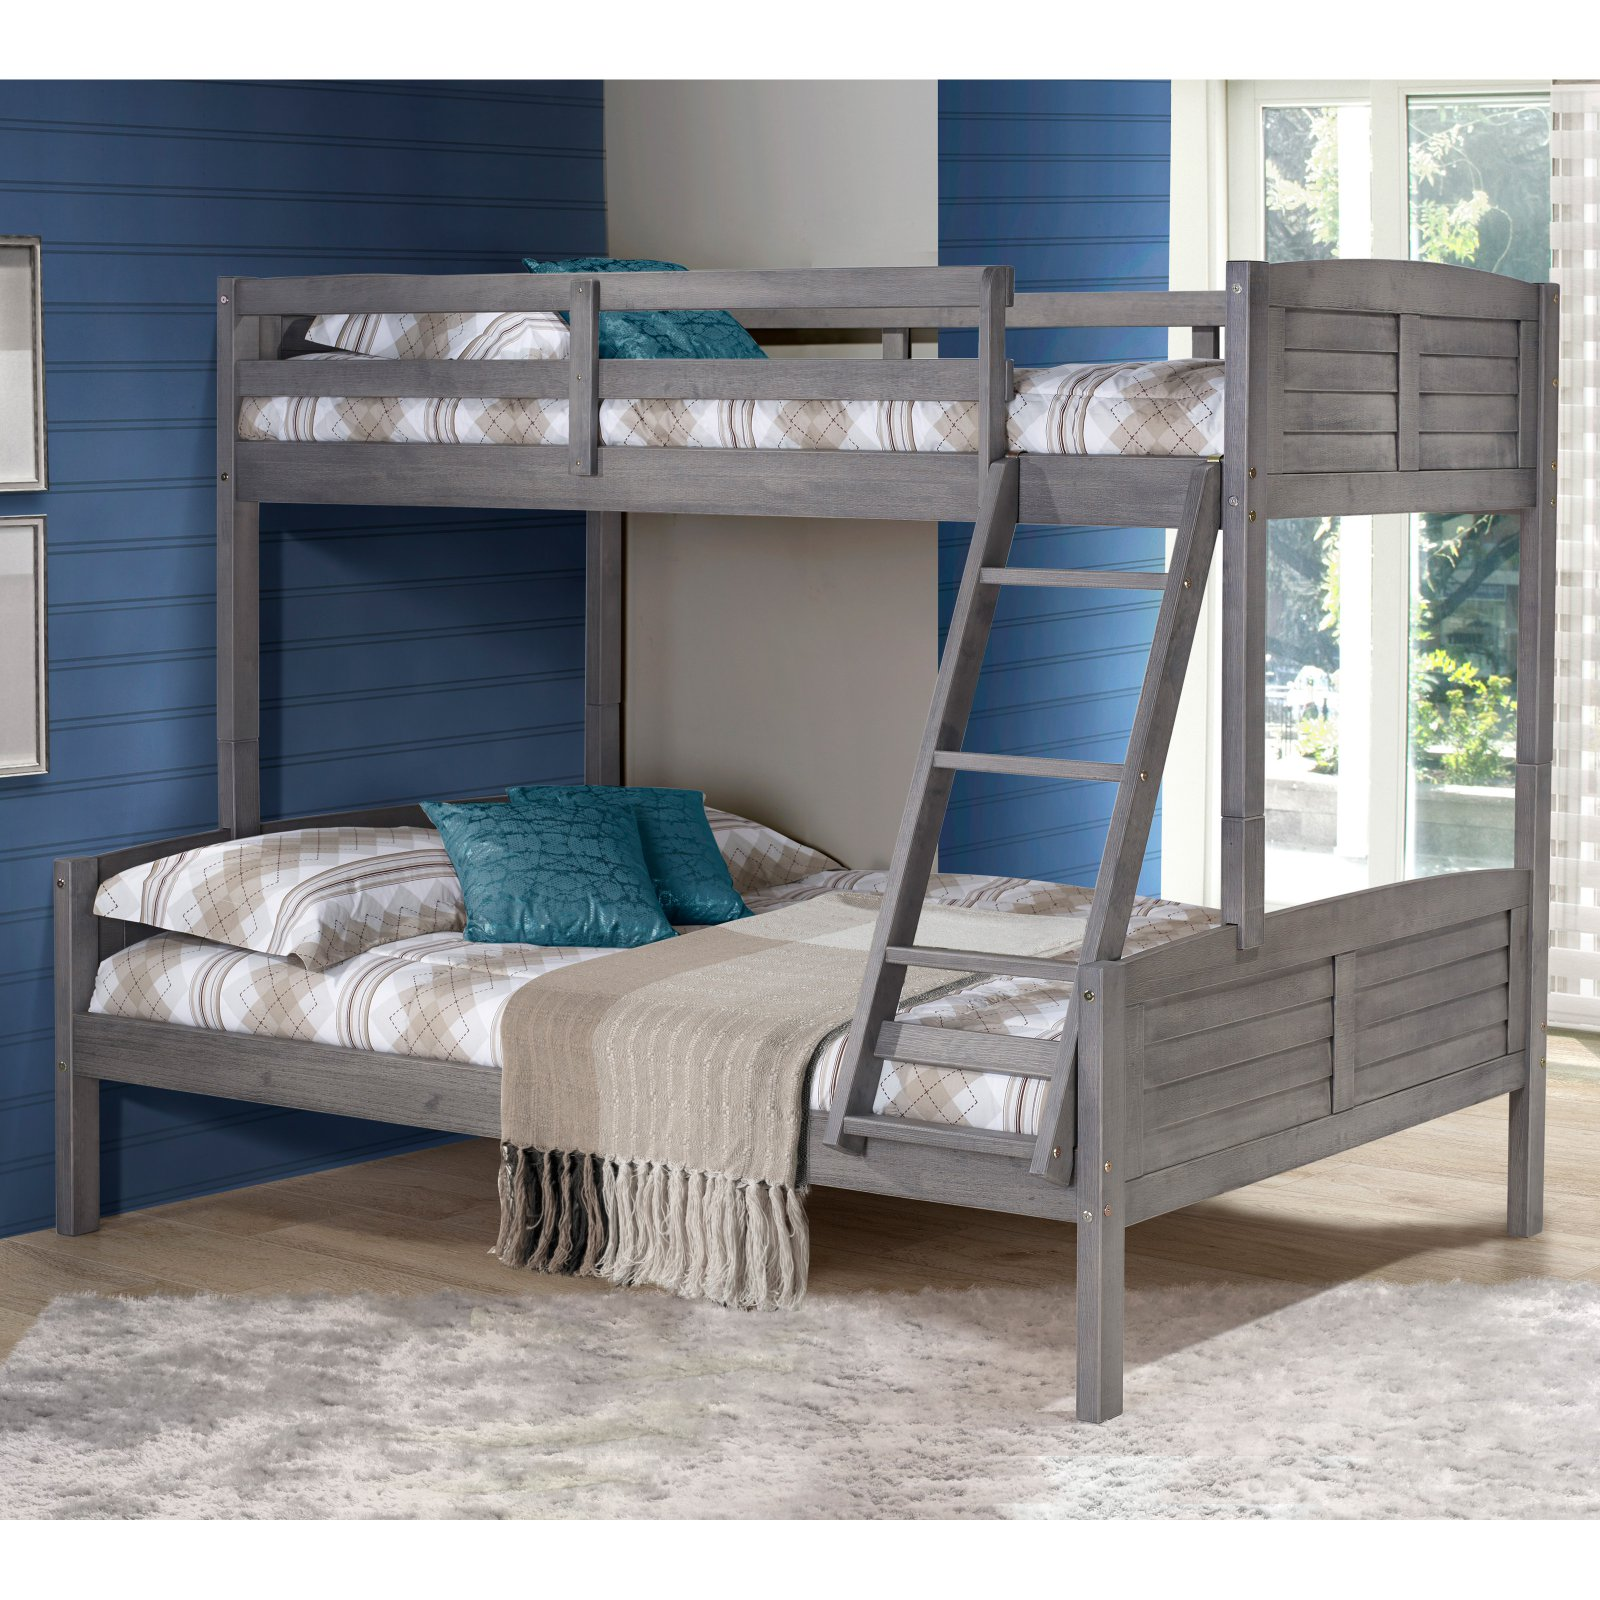 Donco Louver Twin over Full Bunk Bed Antique Grey by Donco Kids